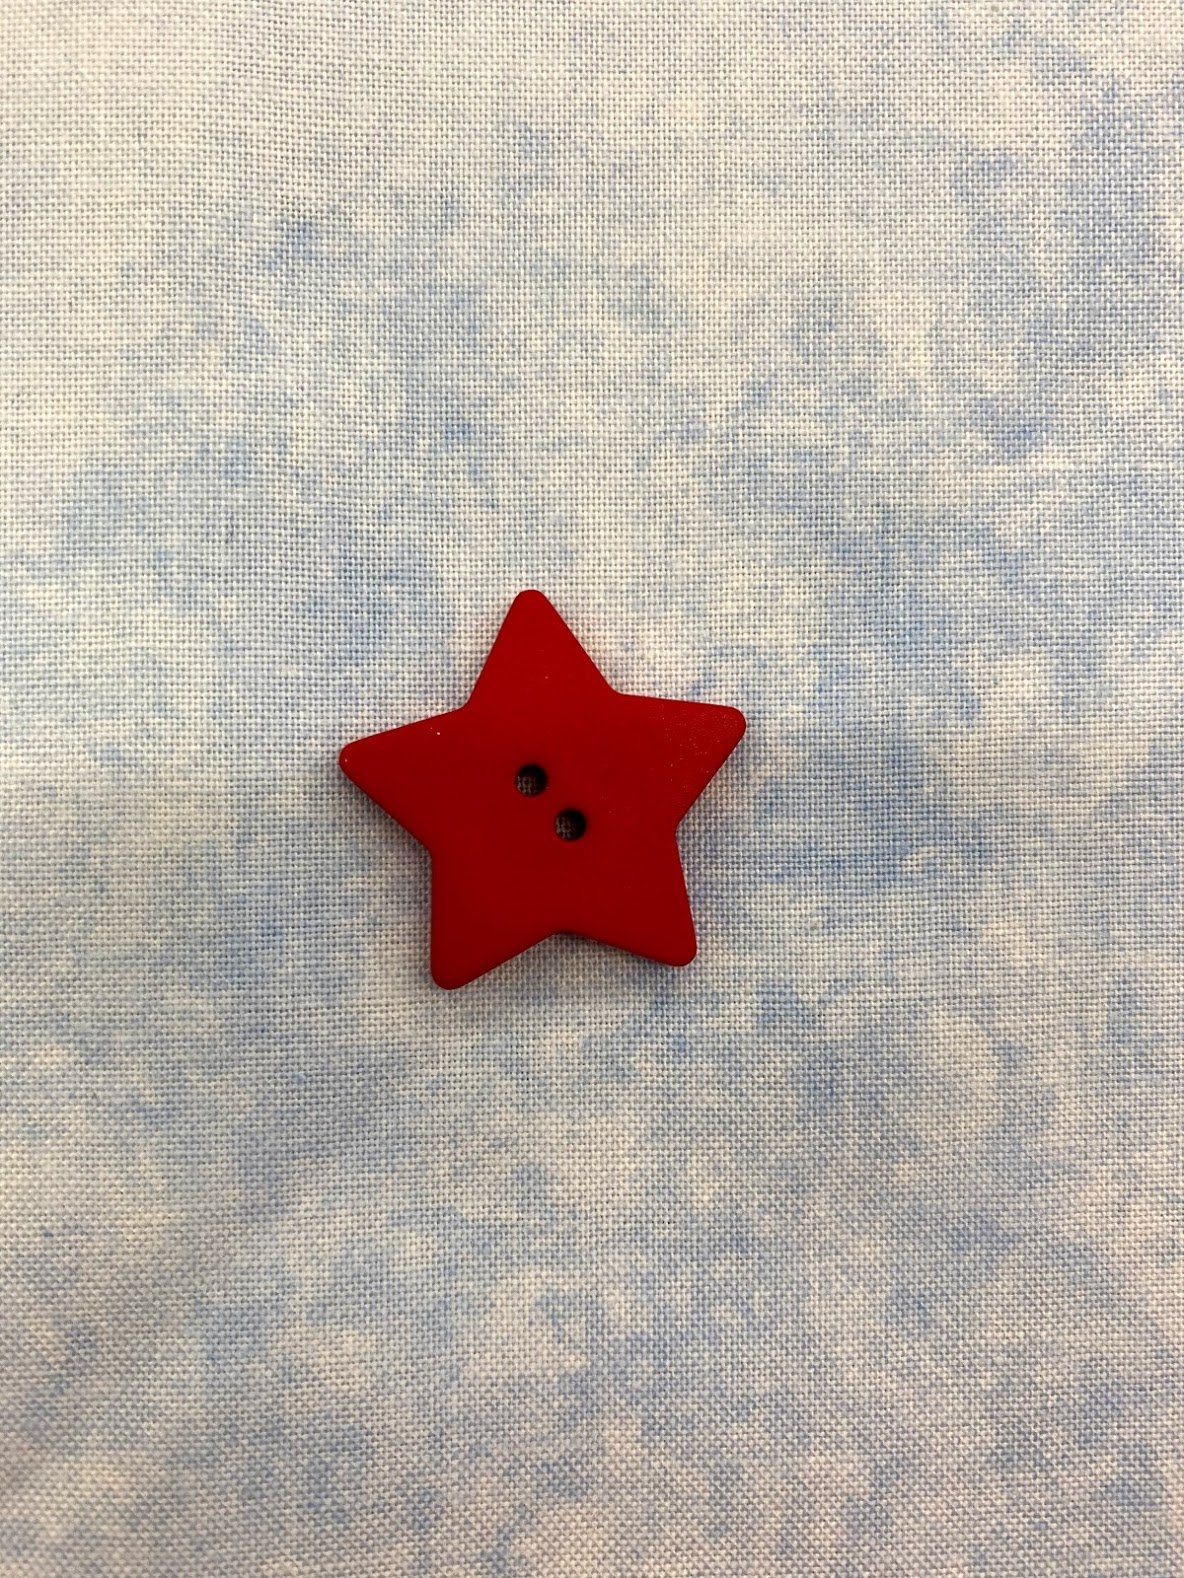 Dill-Buttons Red Star